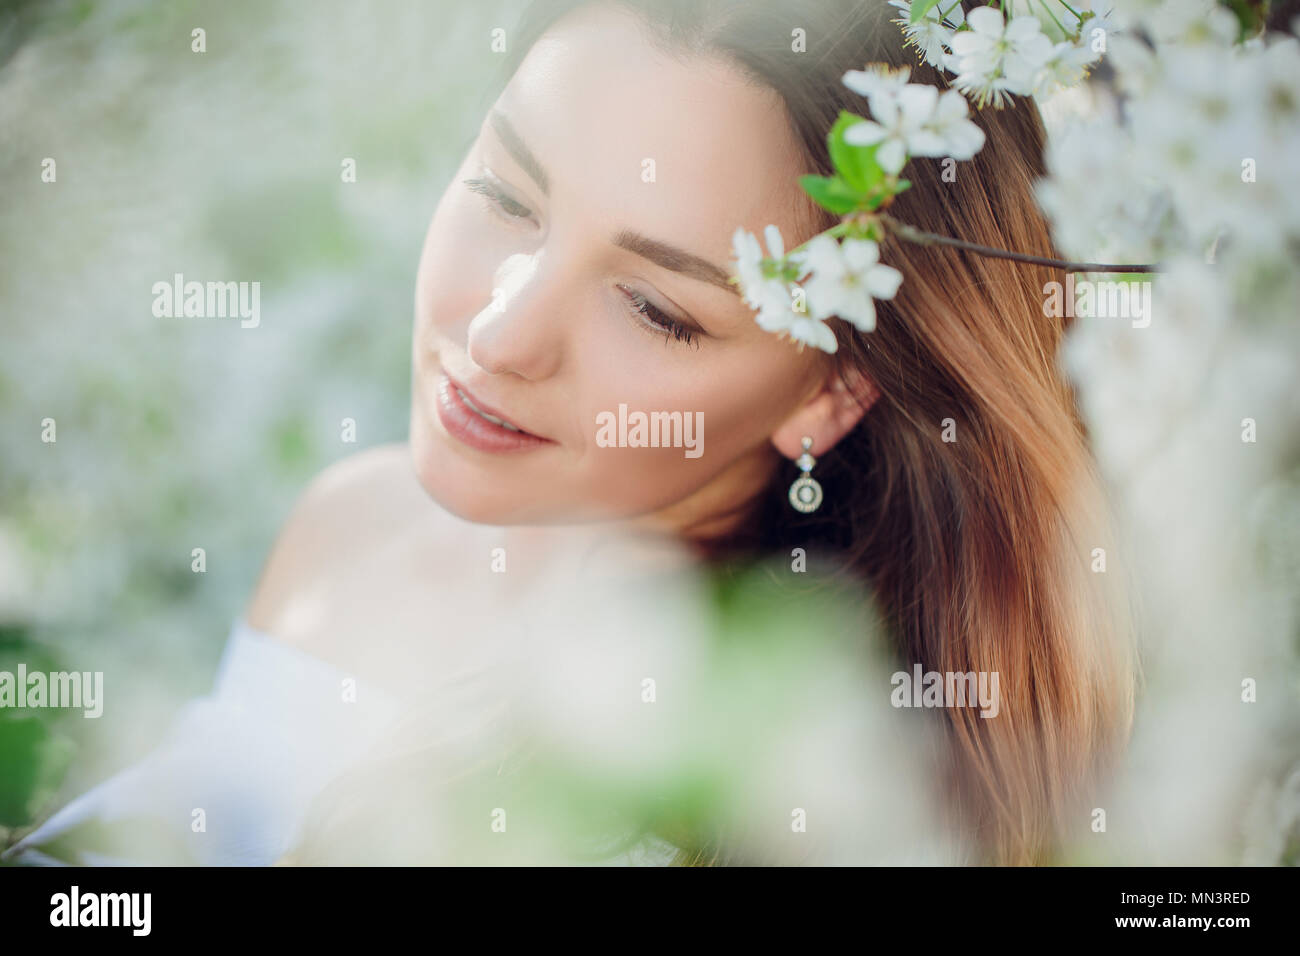 Young beautiful blonde woman in blooming almonds garden. White flowers at spring. blurring - Stock Image